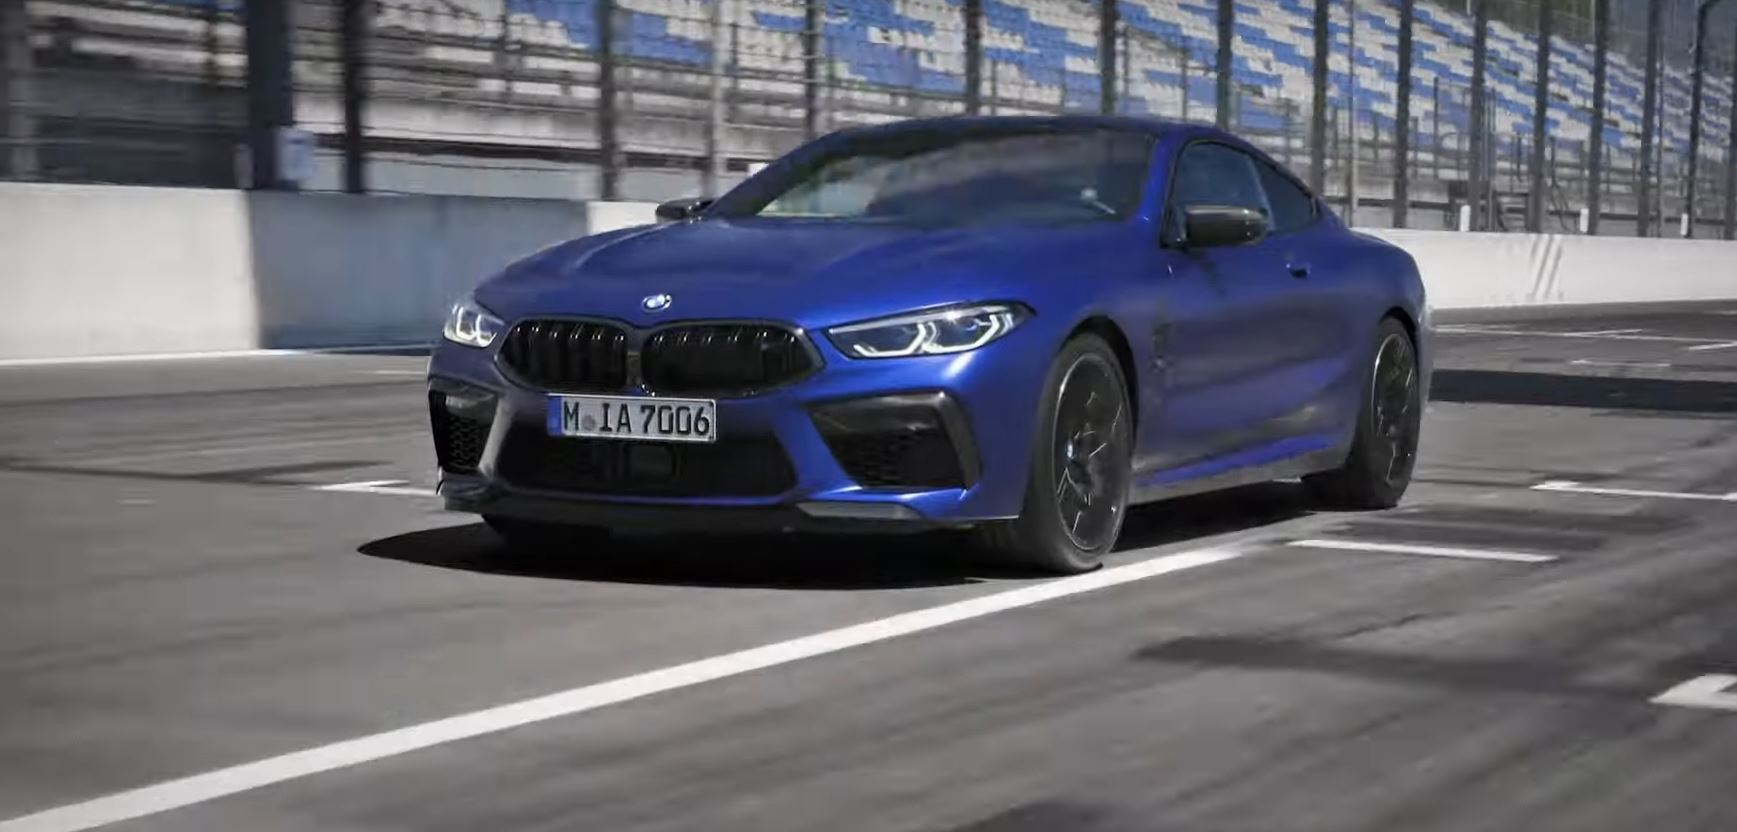 Video: Here's All You Need to Know About the new BMW M8 Models